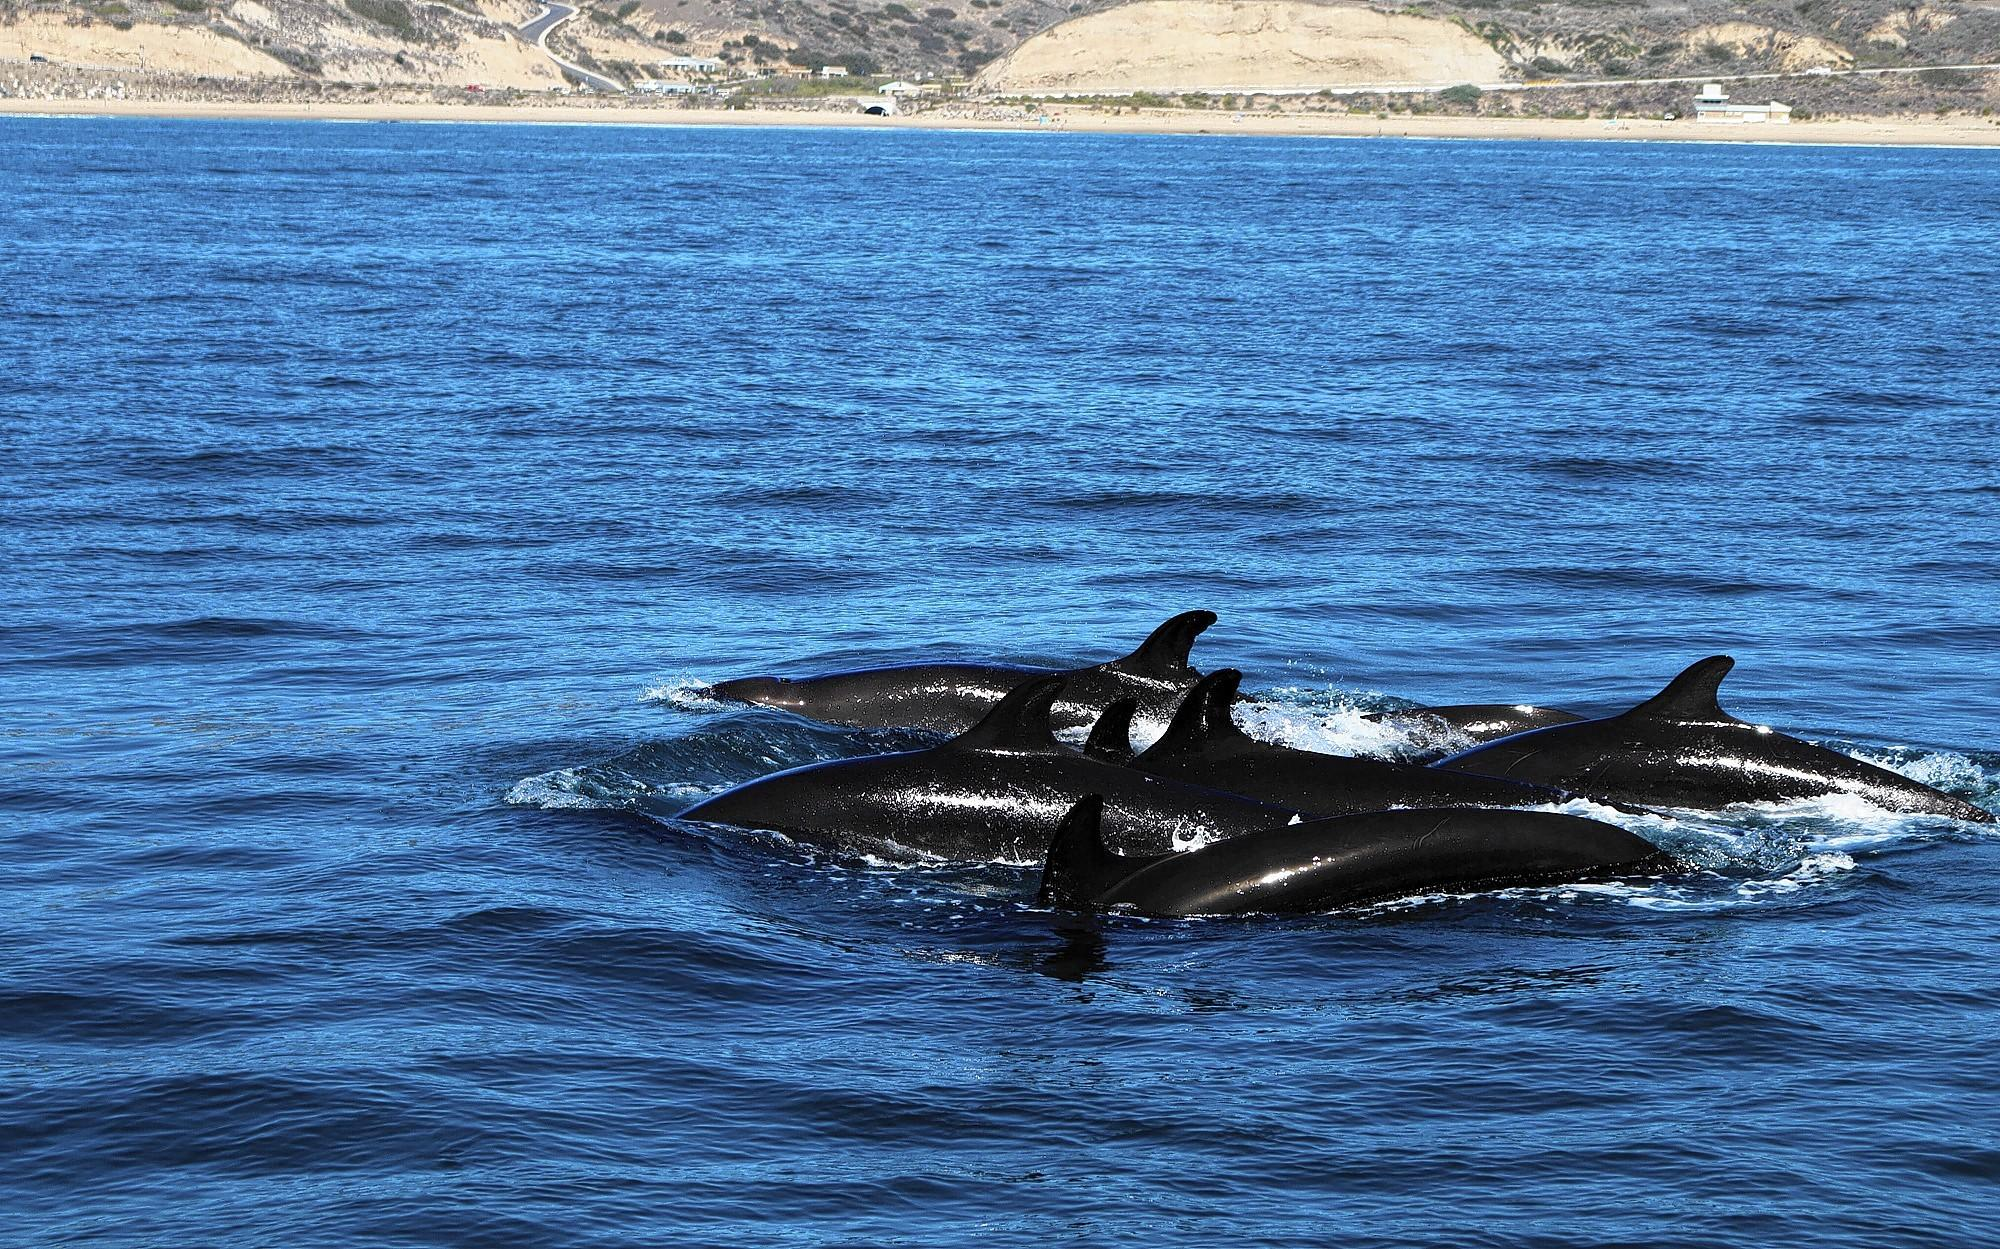 Rarely seen false killer whales explored the waters off Newport Beach Wednesday and Thursday.